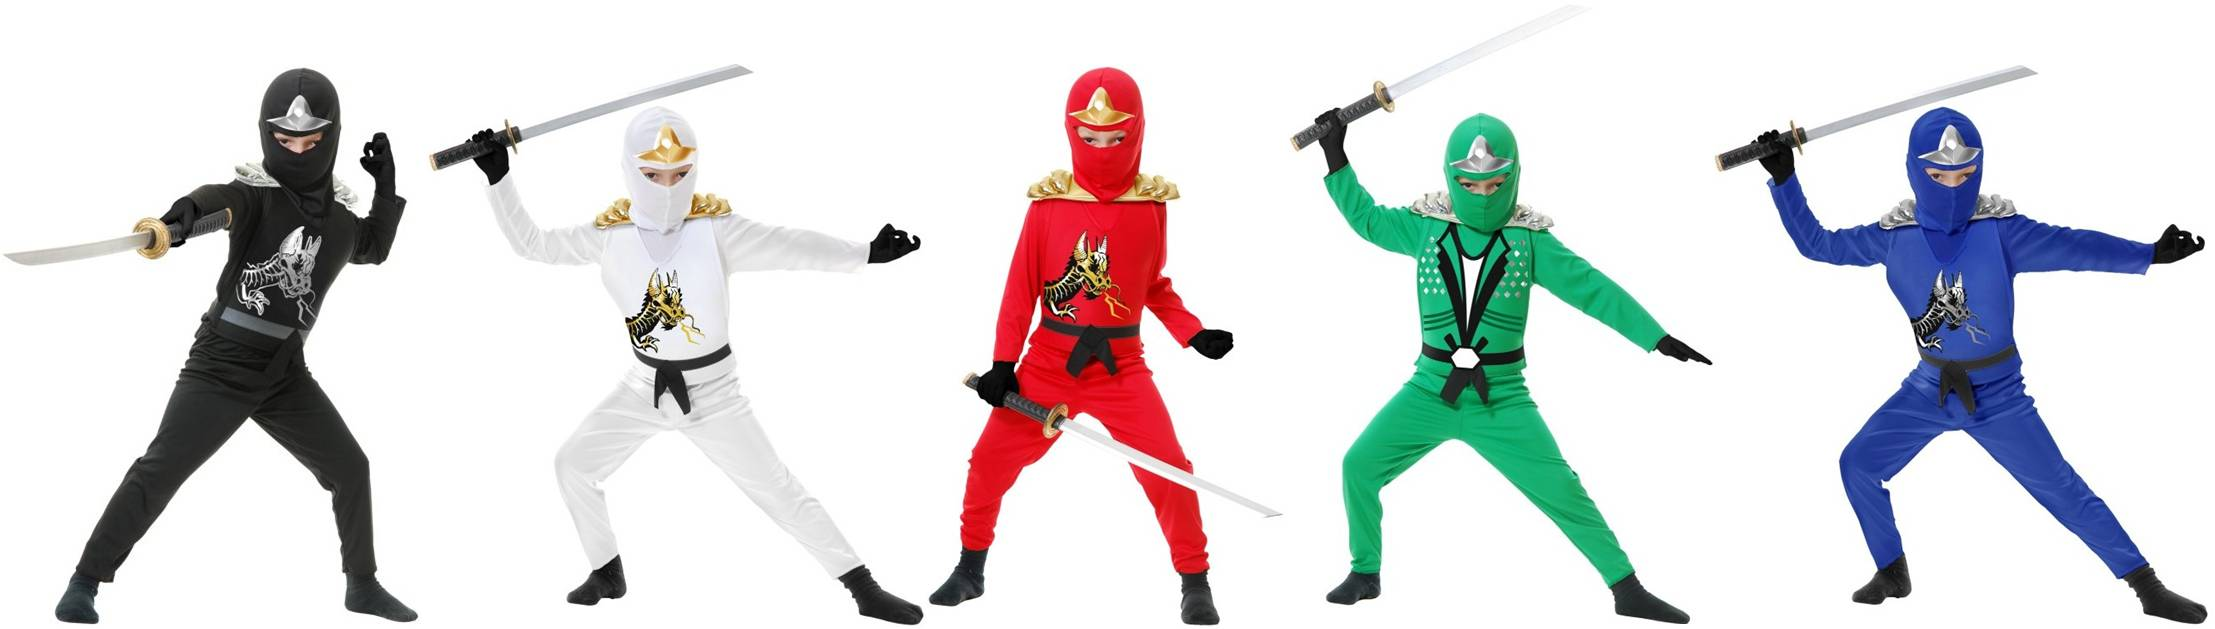 Gold Ninja Halloween Costume ✓ The Halloween and Makeup